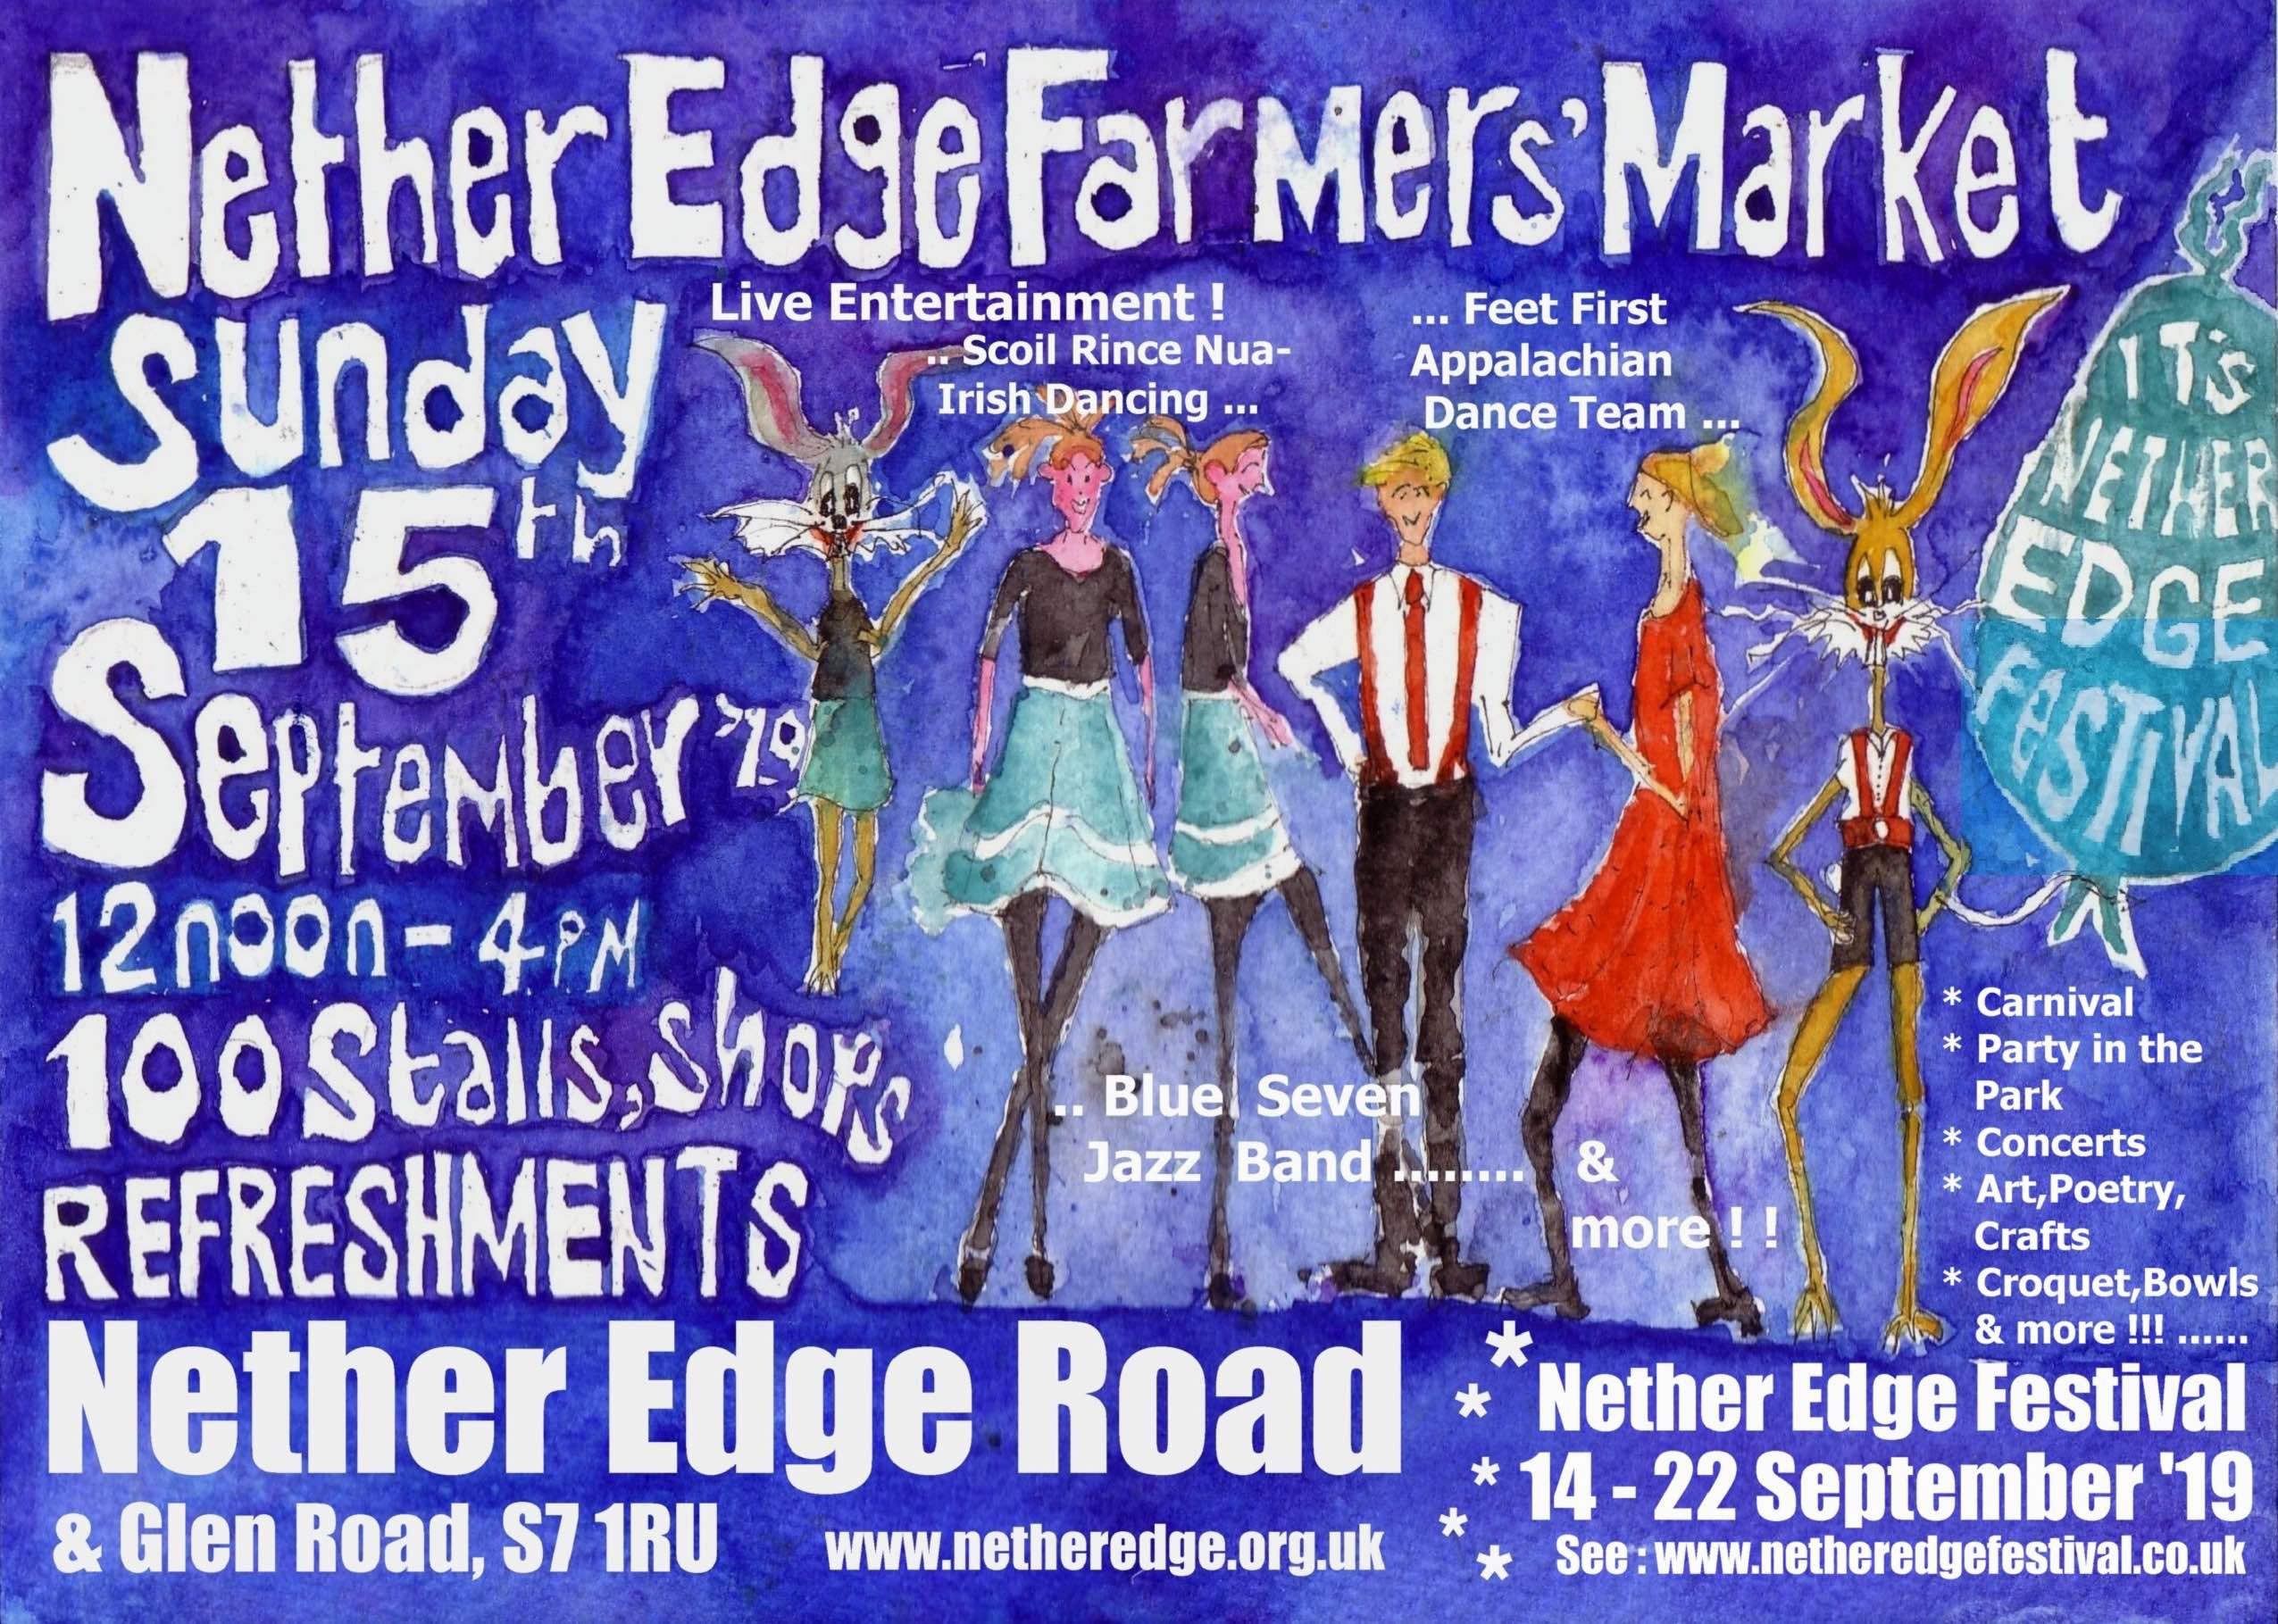 Nether Edge September 15th Farmers' Market poster